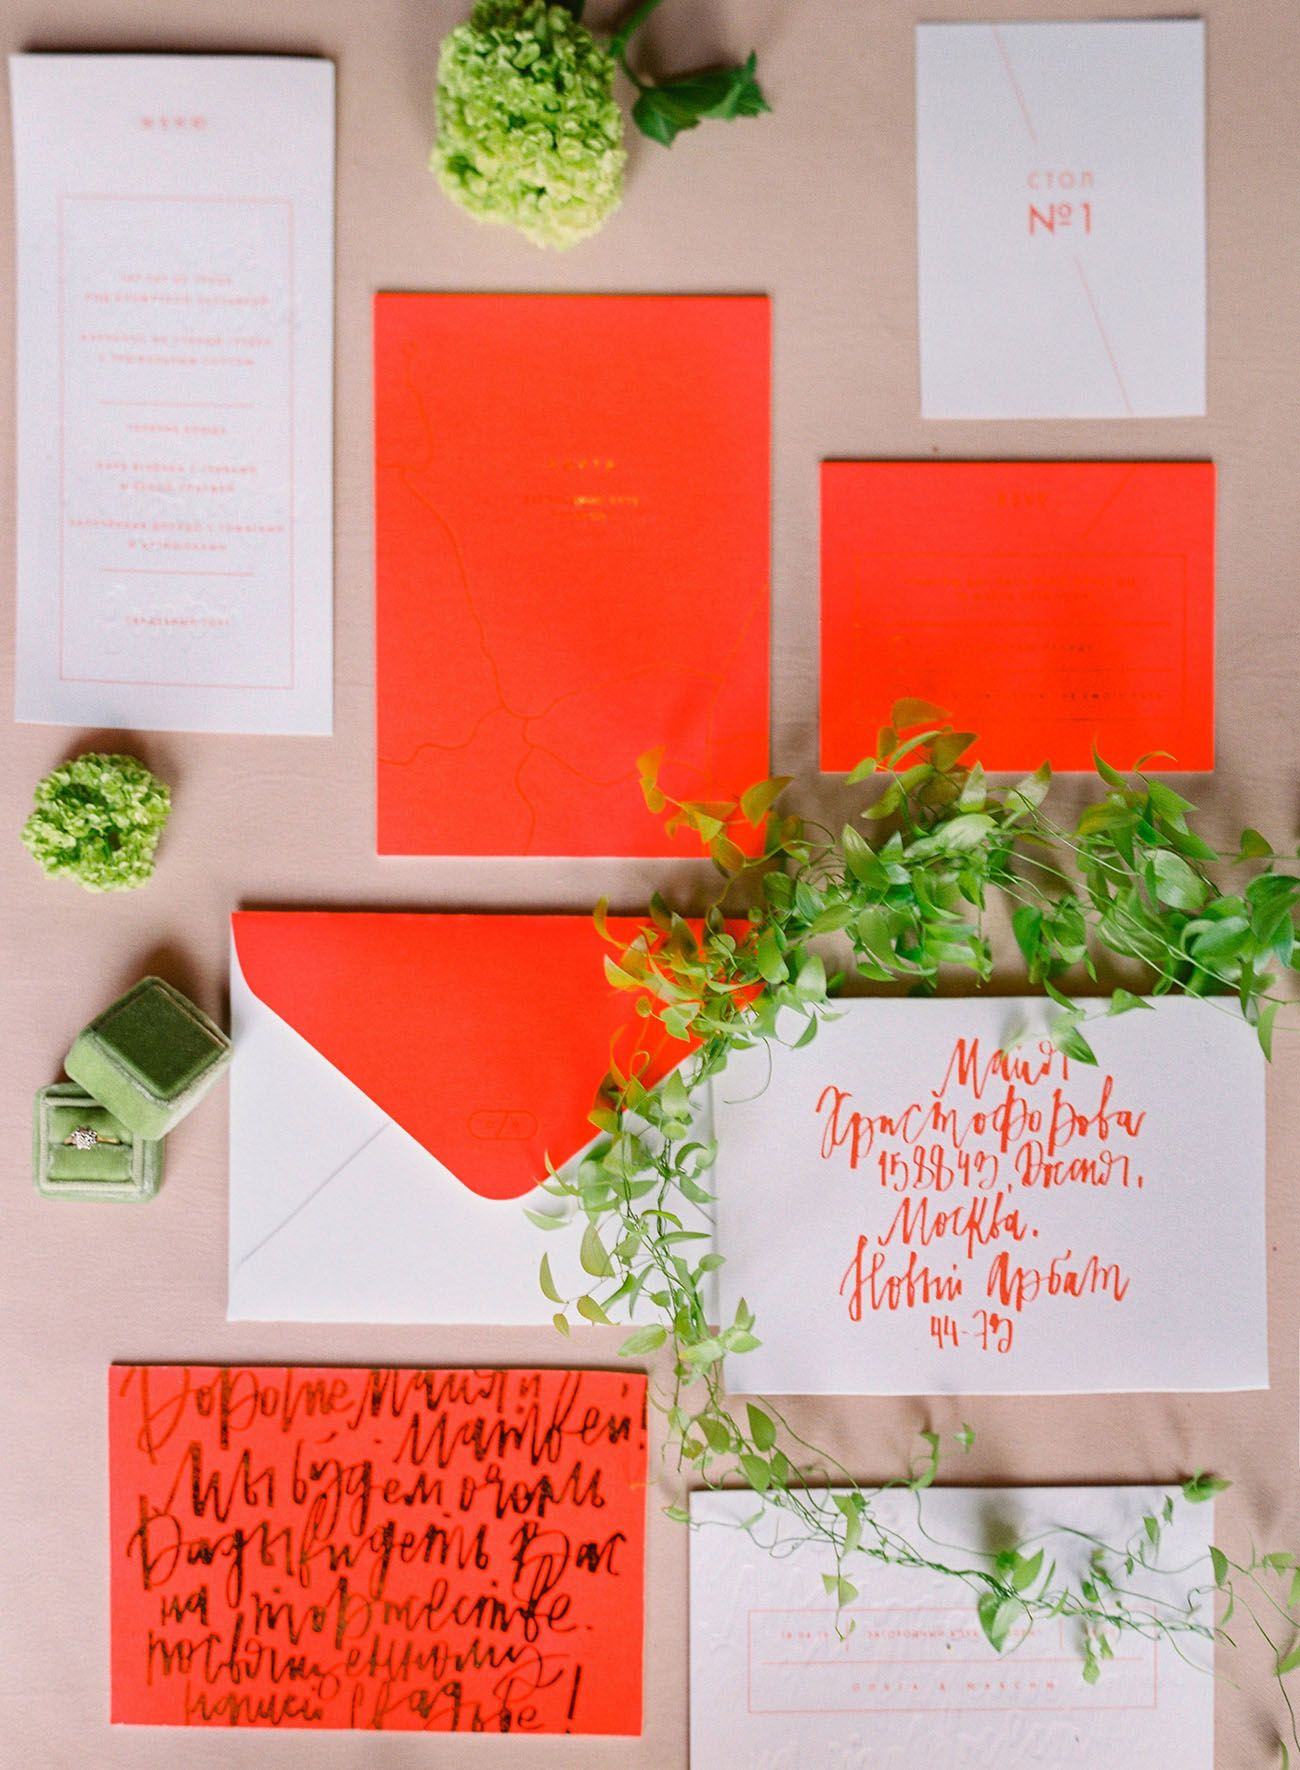 Neon Meets Classic in this Spring Inspiration from Russia | INVITES ...